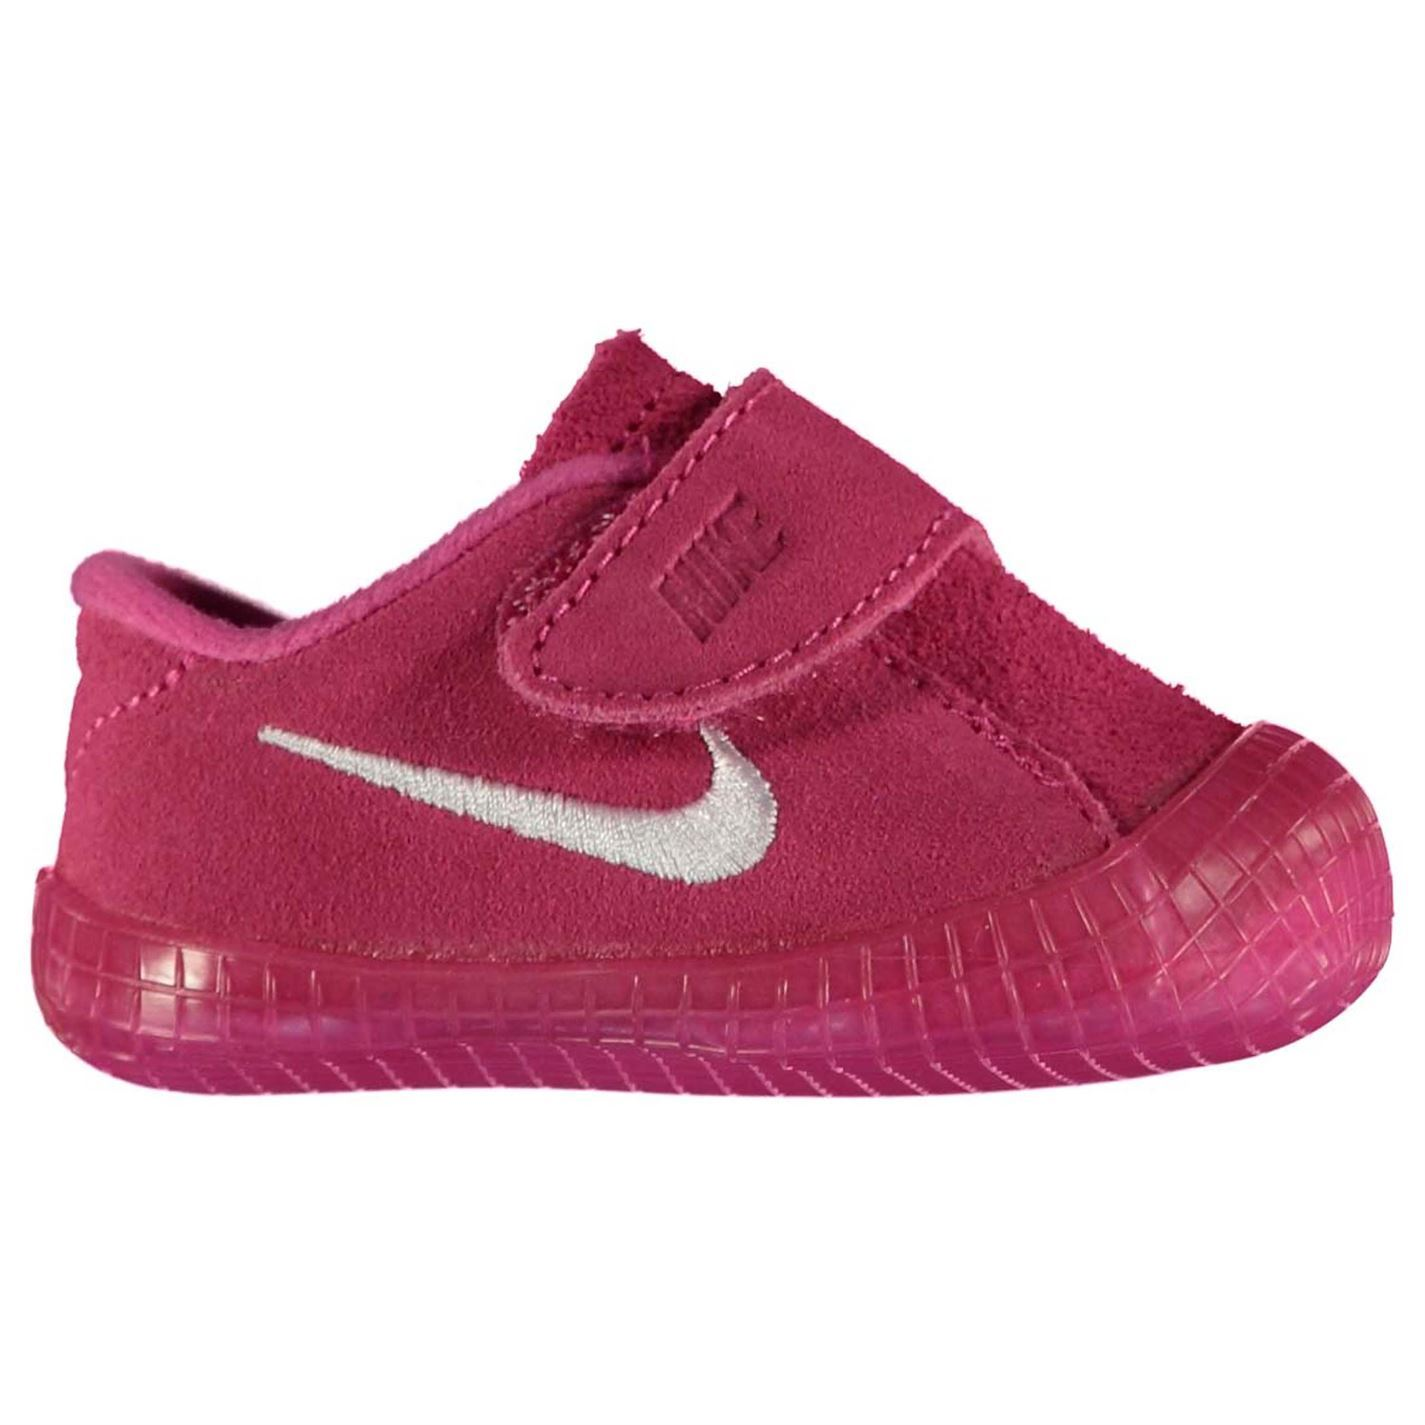 262a6206c ... Nike Waffle 1 Crib Shoes Infant Baby Girls Pink/White Babies Booties  Footwear ...